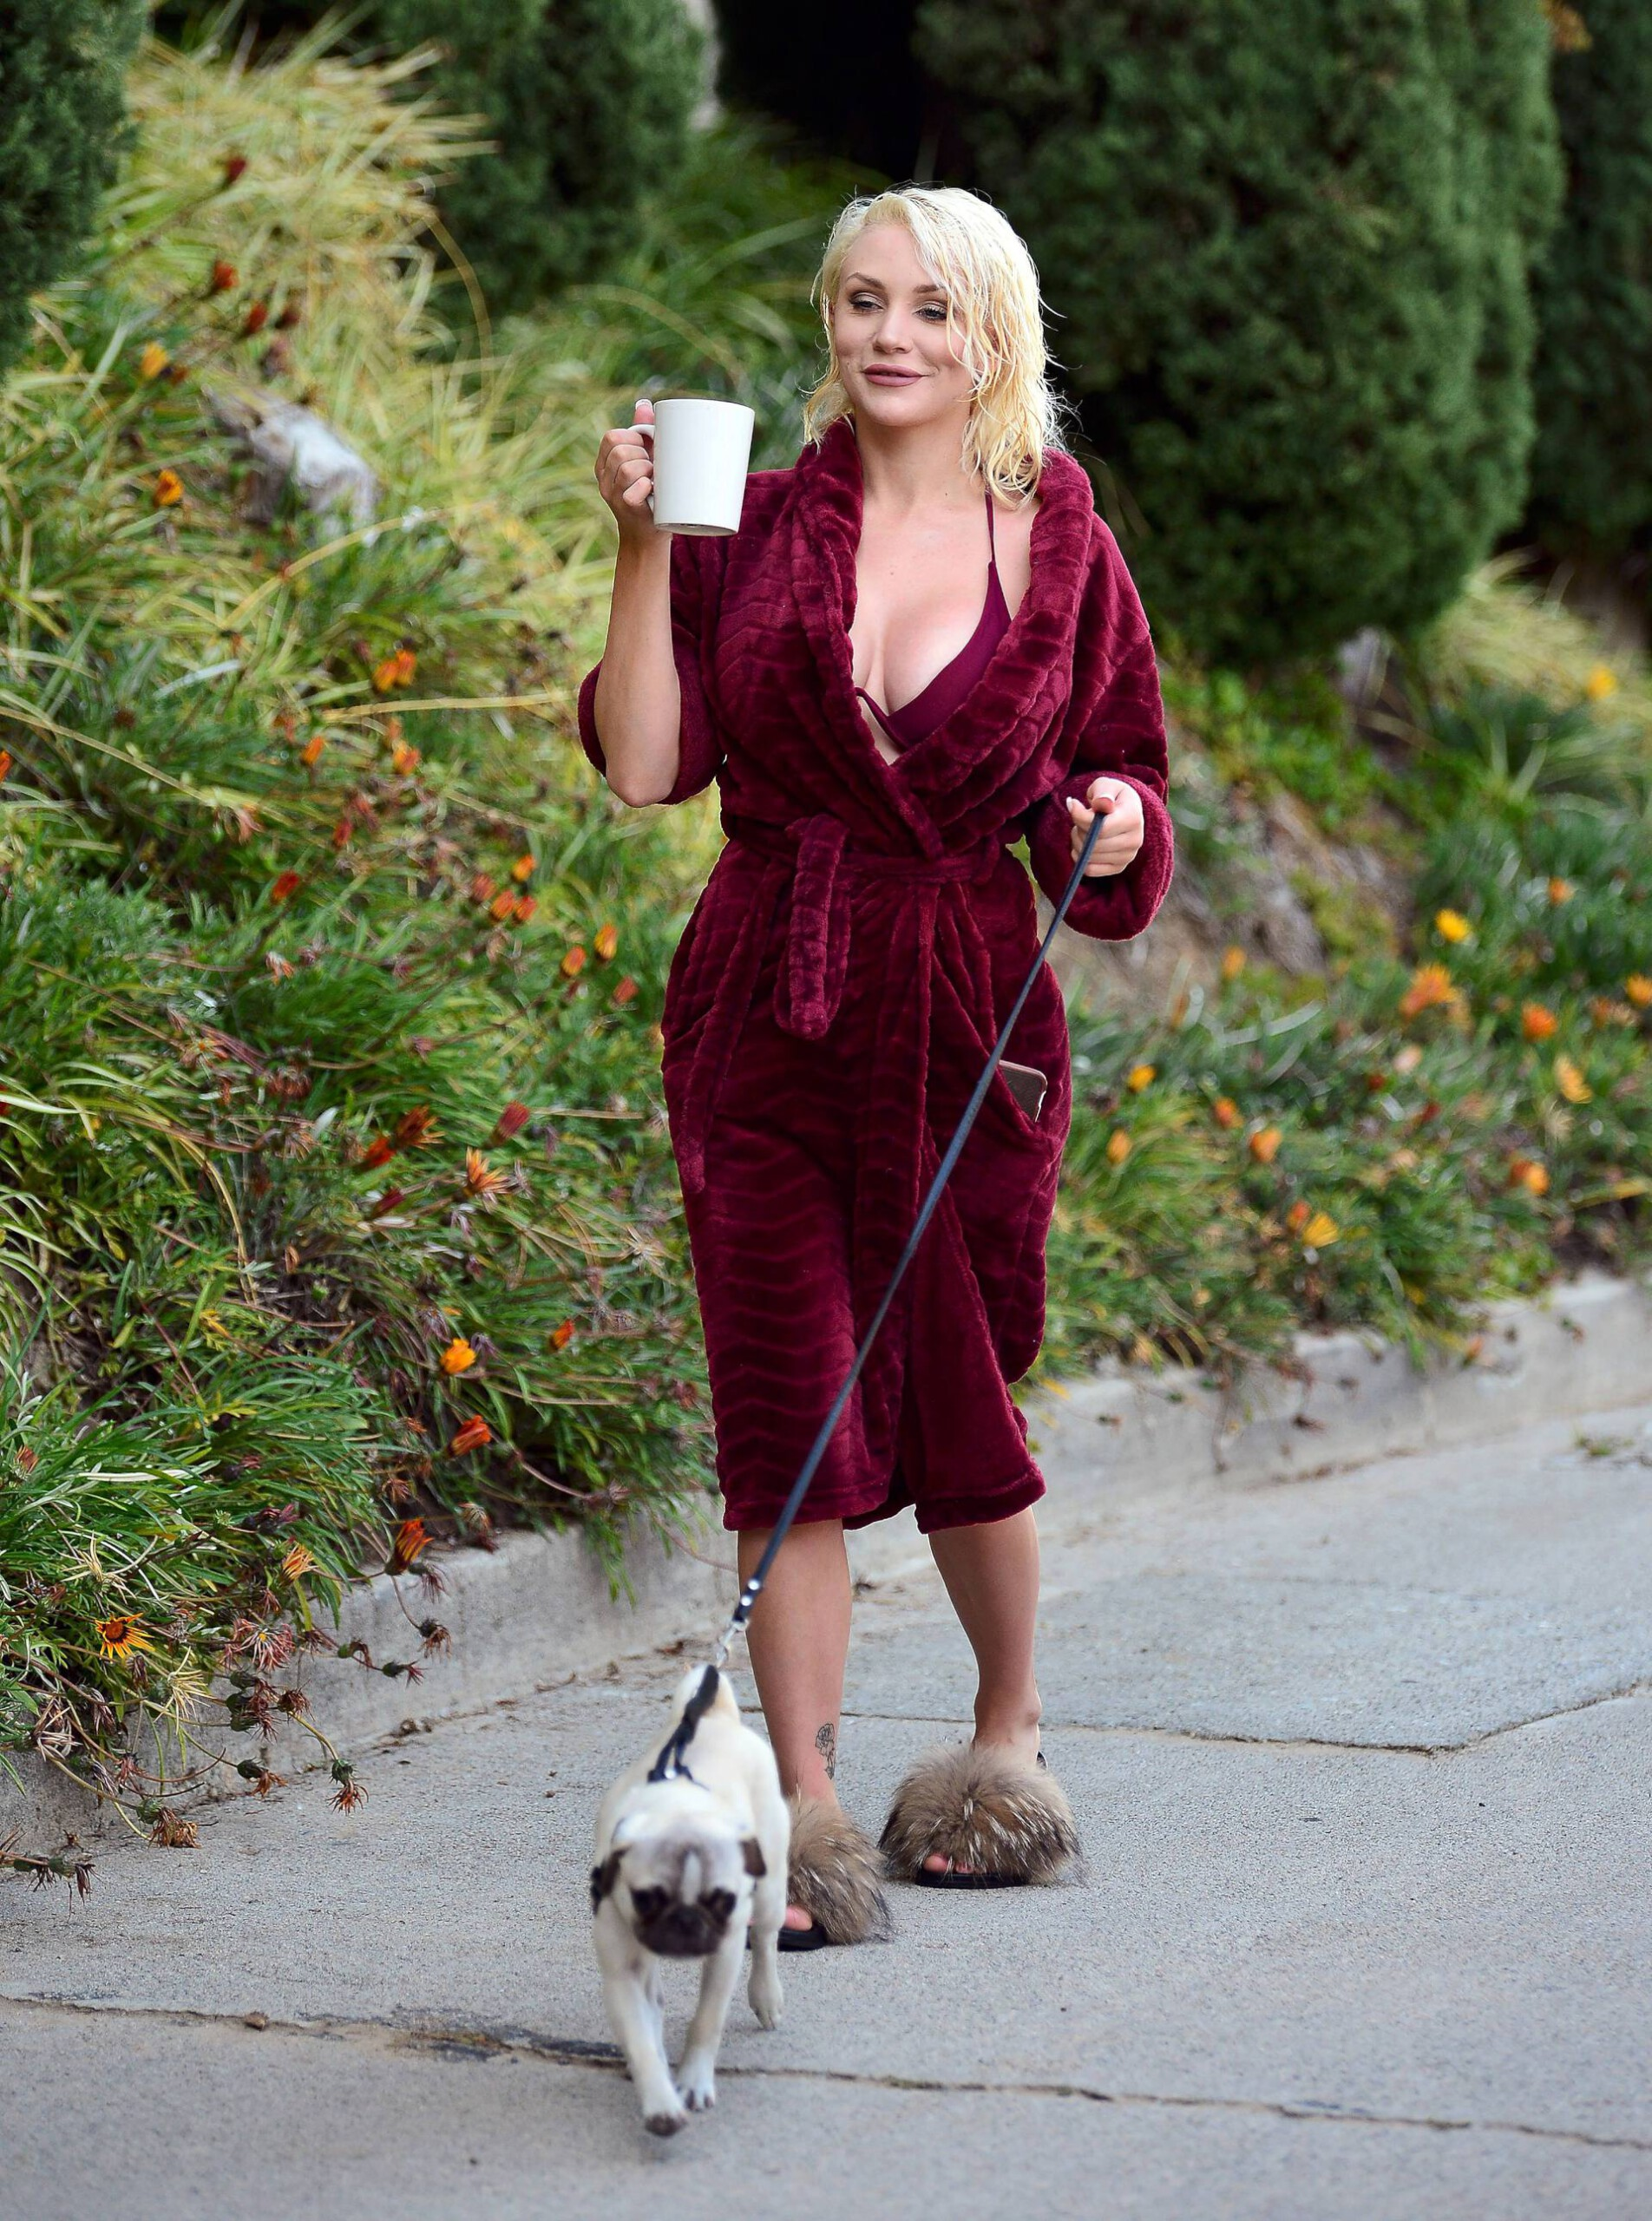 Courtney Stodden Sexy Boobs In Risque Robe Out In Los Angeles 0015